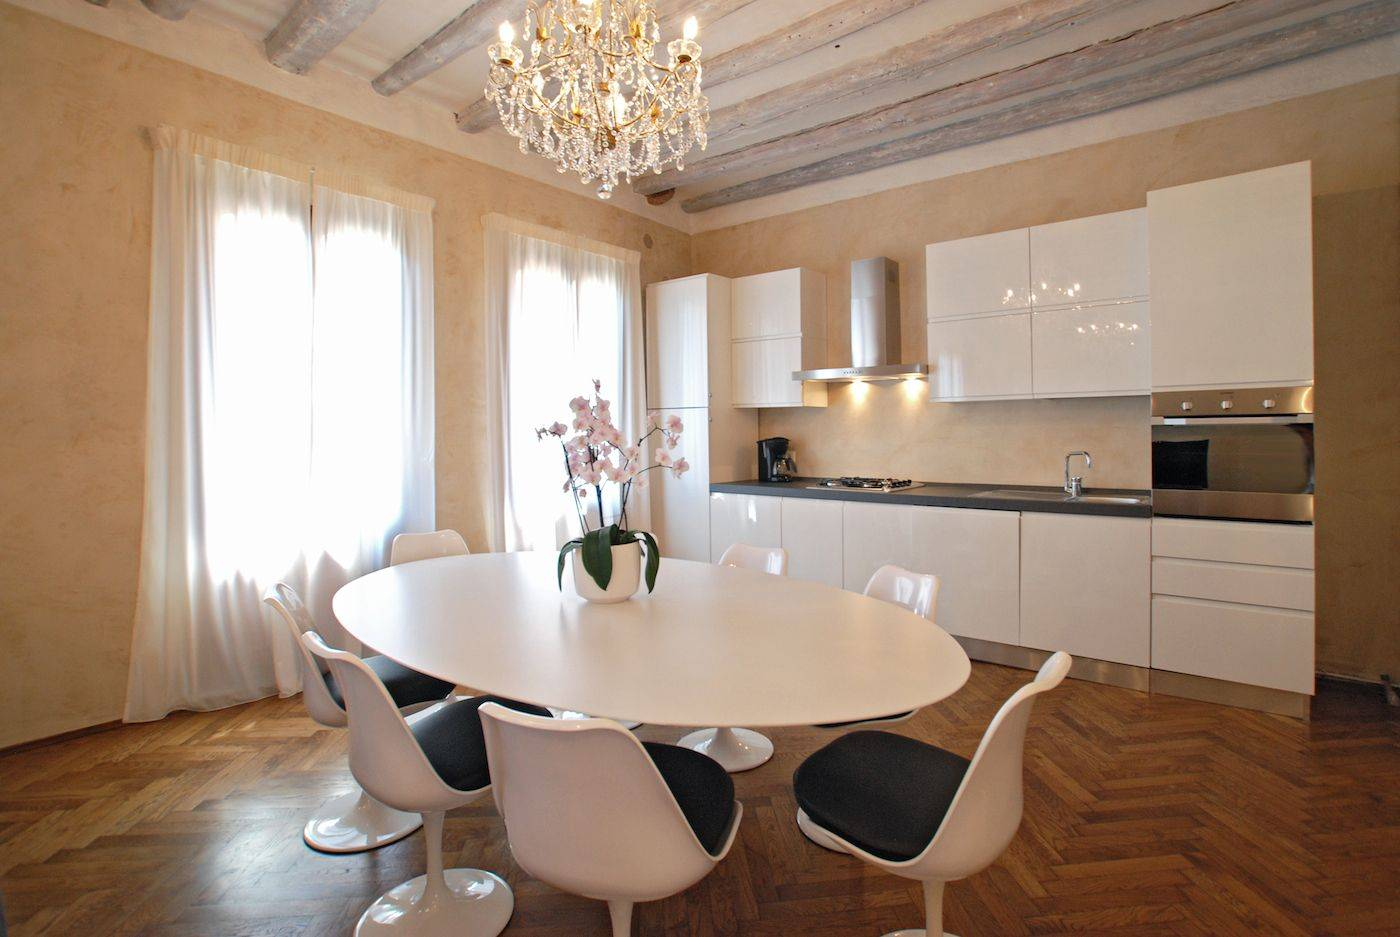 the kitchen is fully equipped and there is a large designer table with 8 chairs